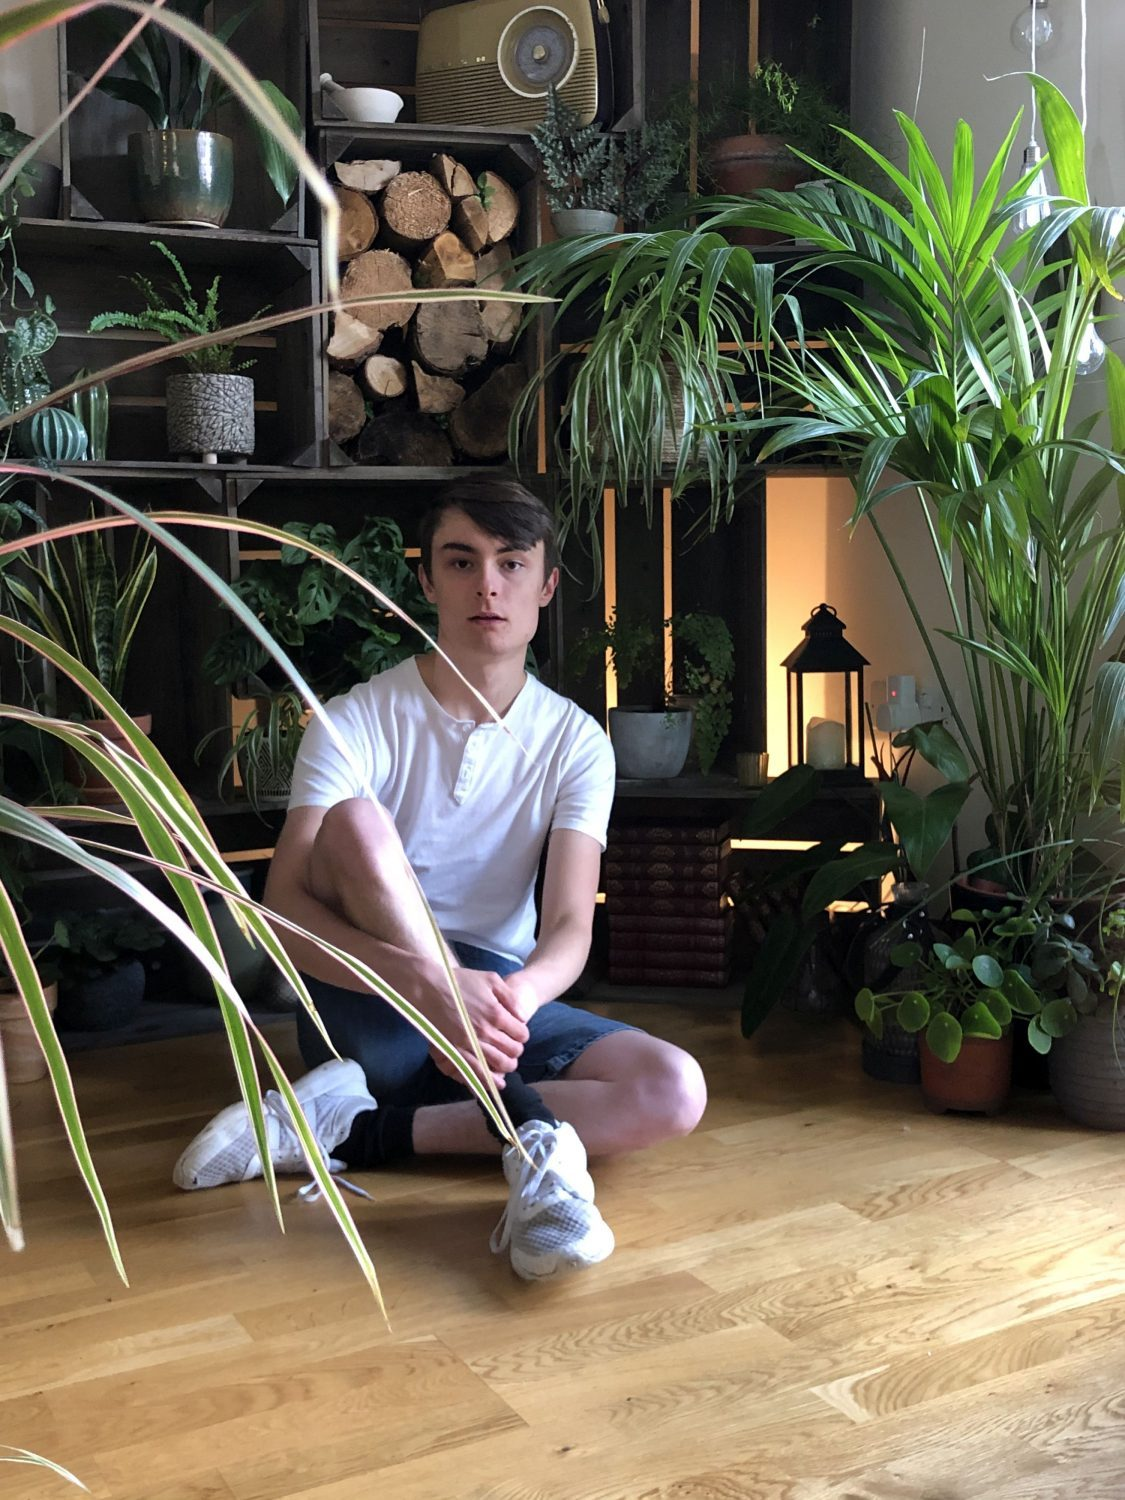 self-confessed 'jungle boy' has 1,400 house plants that take him hours to water every day